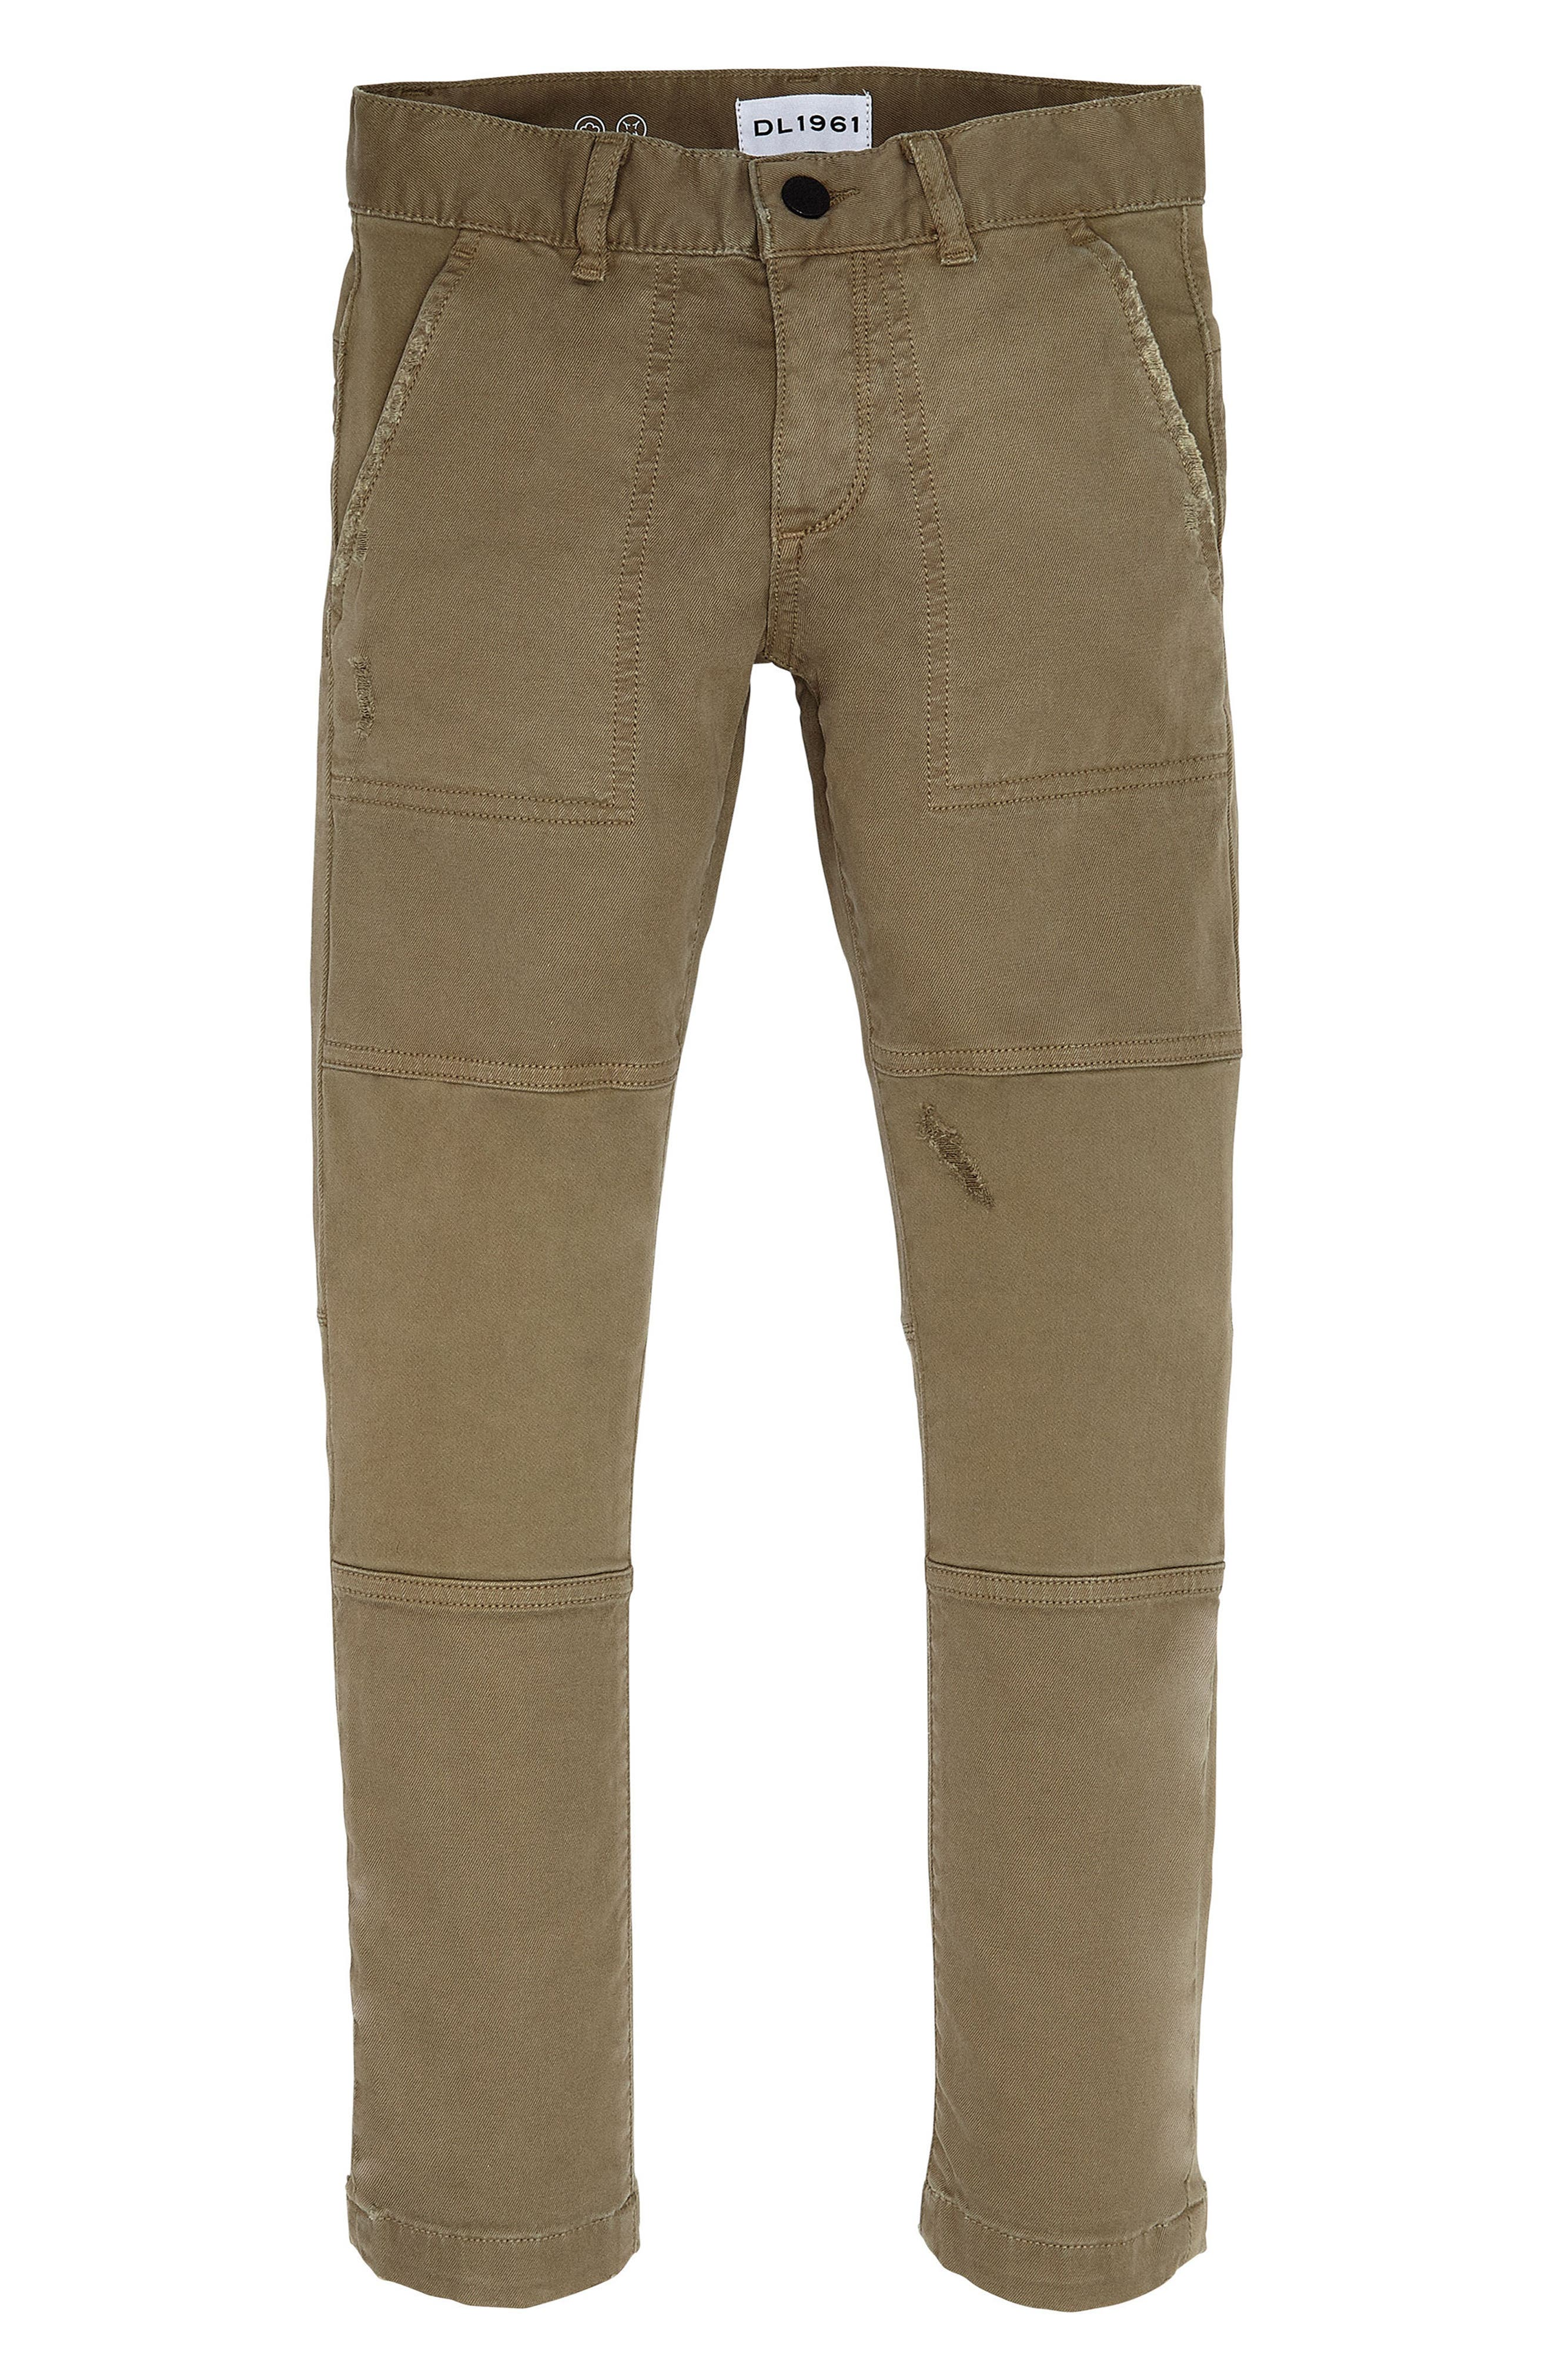 Hawke Skinny Fit Utility Jeans,                             Main thumbnail 1, color,                             370